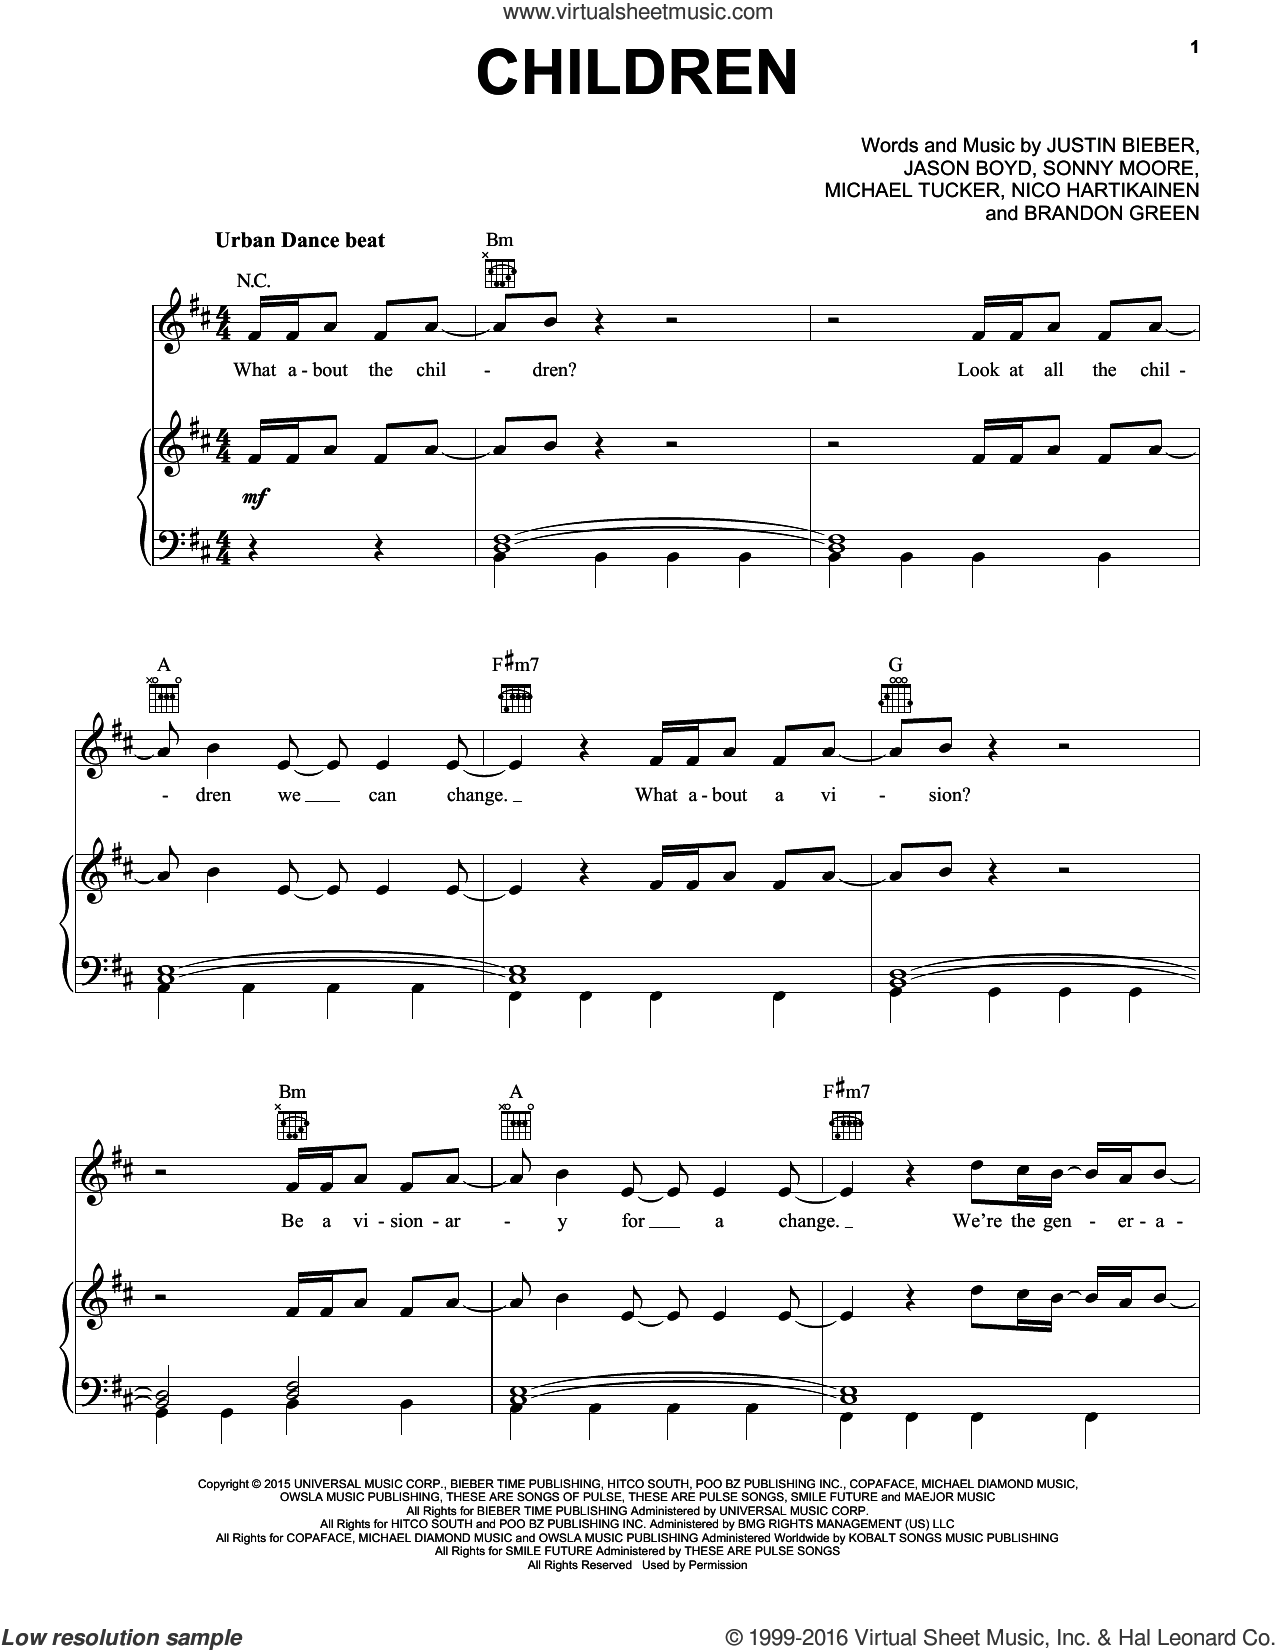 Children sheet music for voice, piano or guitar by Justin Bieber, Brandon Green, Jason Boyd, Michael Tucker, Nico Hartikainen and Sonny Moore, intermediate